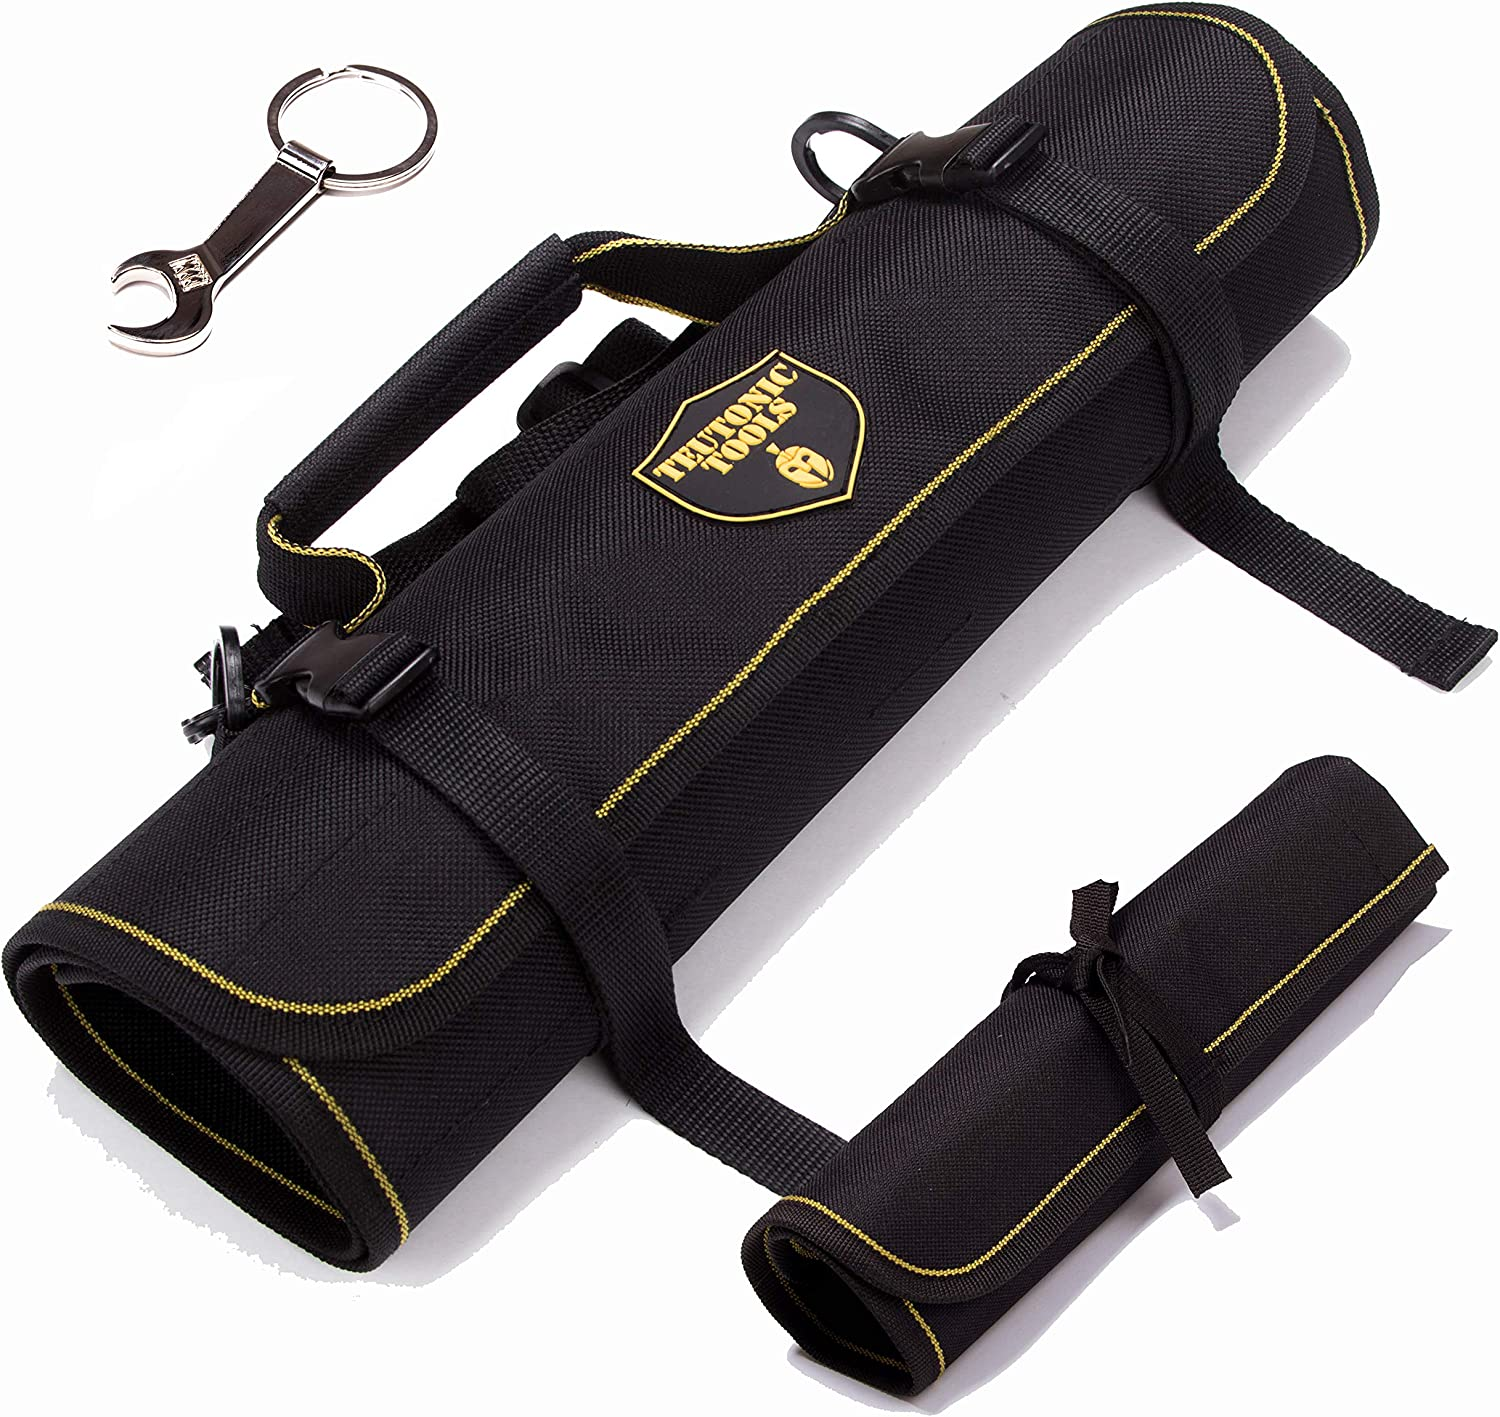 Teutonic Roll Organizer Safety and trust Bag worthy of - EDC Finally popular brand organized your wi Be